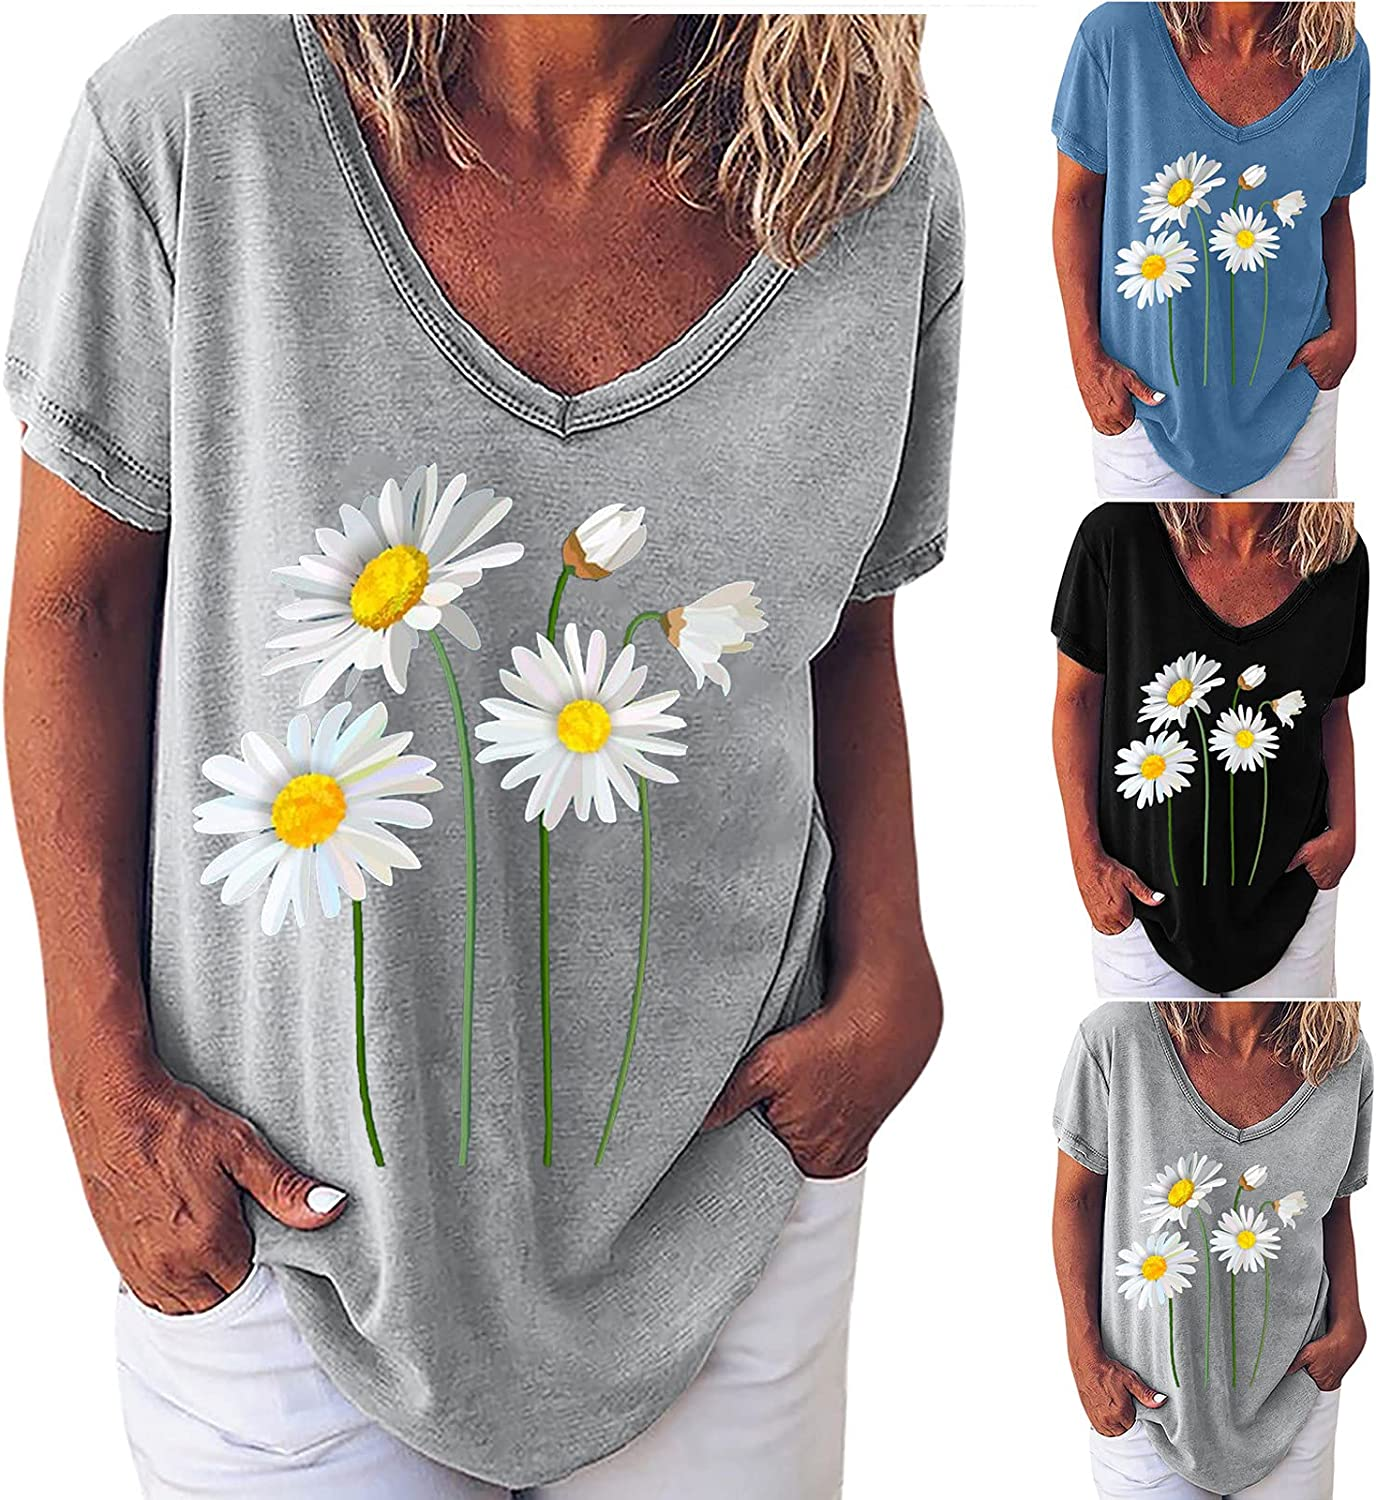 Women's Short Sleeve Tunic Tops Basic V-Neck Loose T Shirts Solid Color Pullover Printing Casual Tops